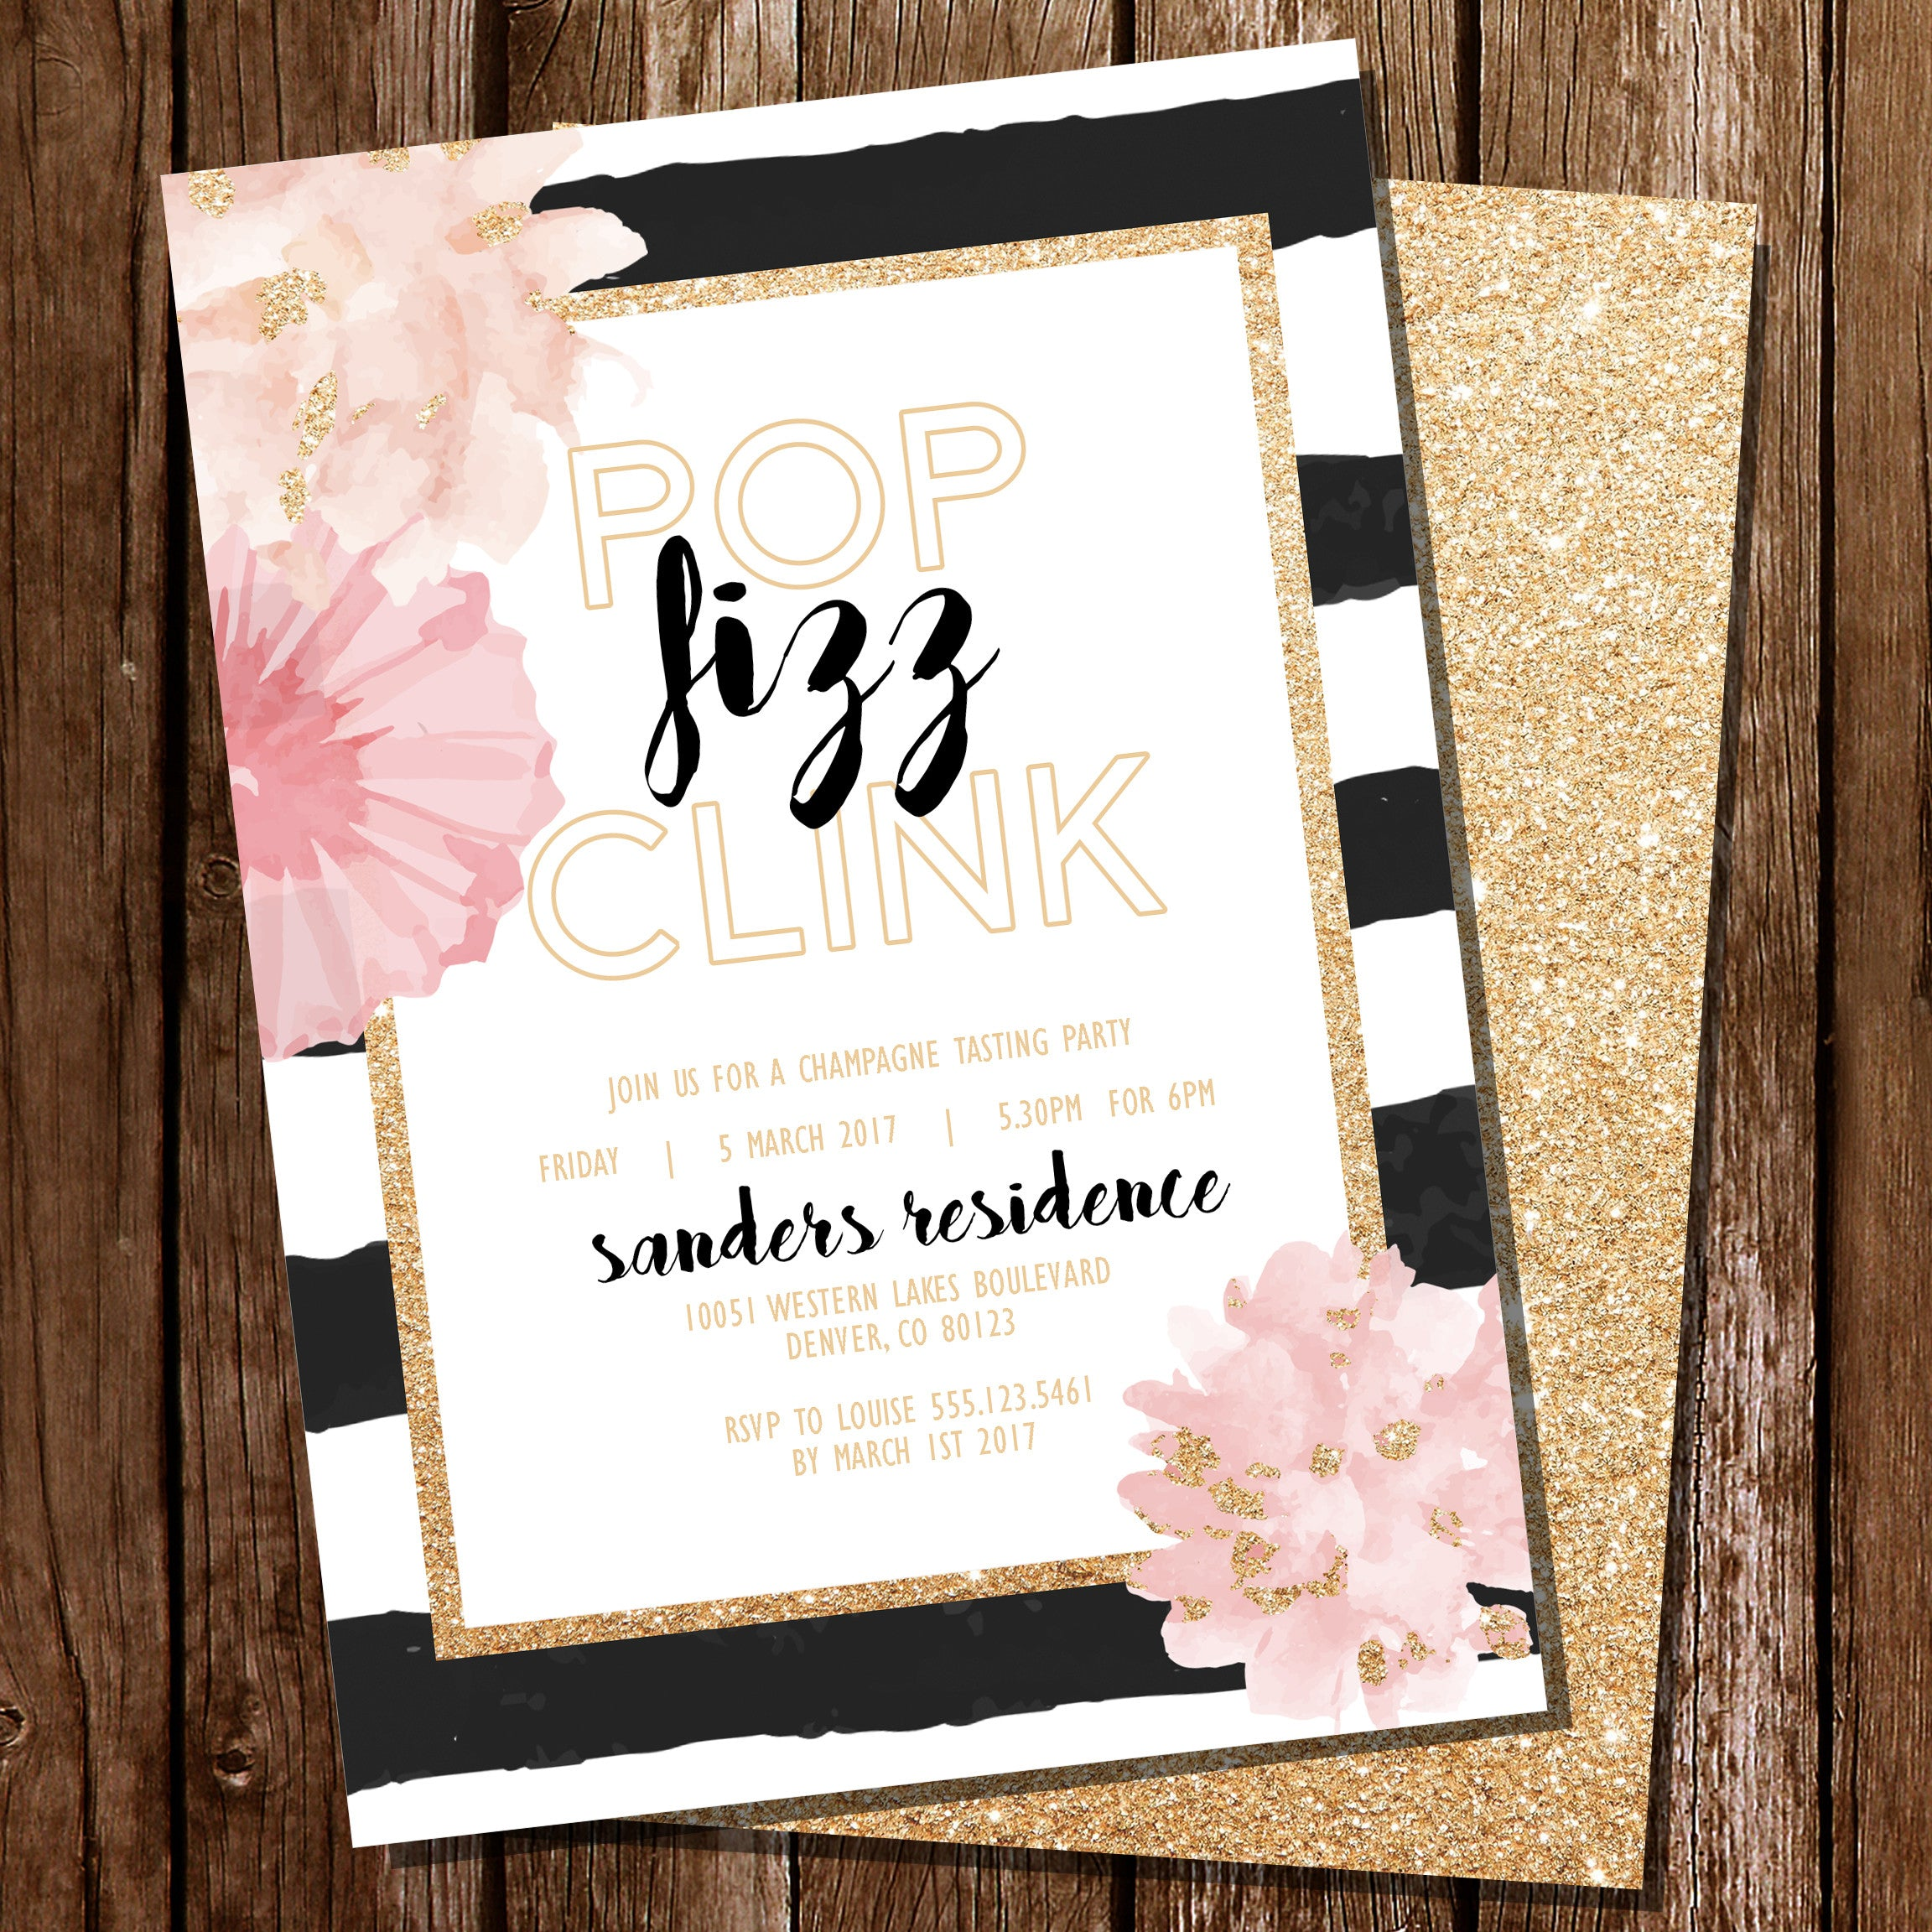 Pop Fizz Clink Invitation Download, Edit Print!